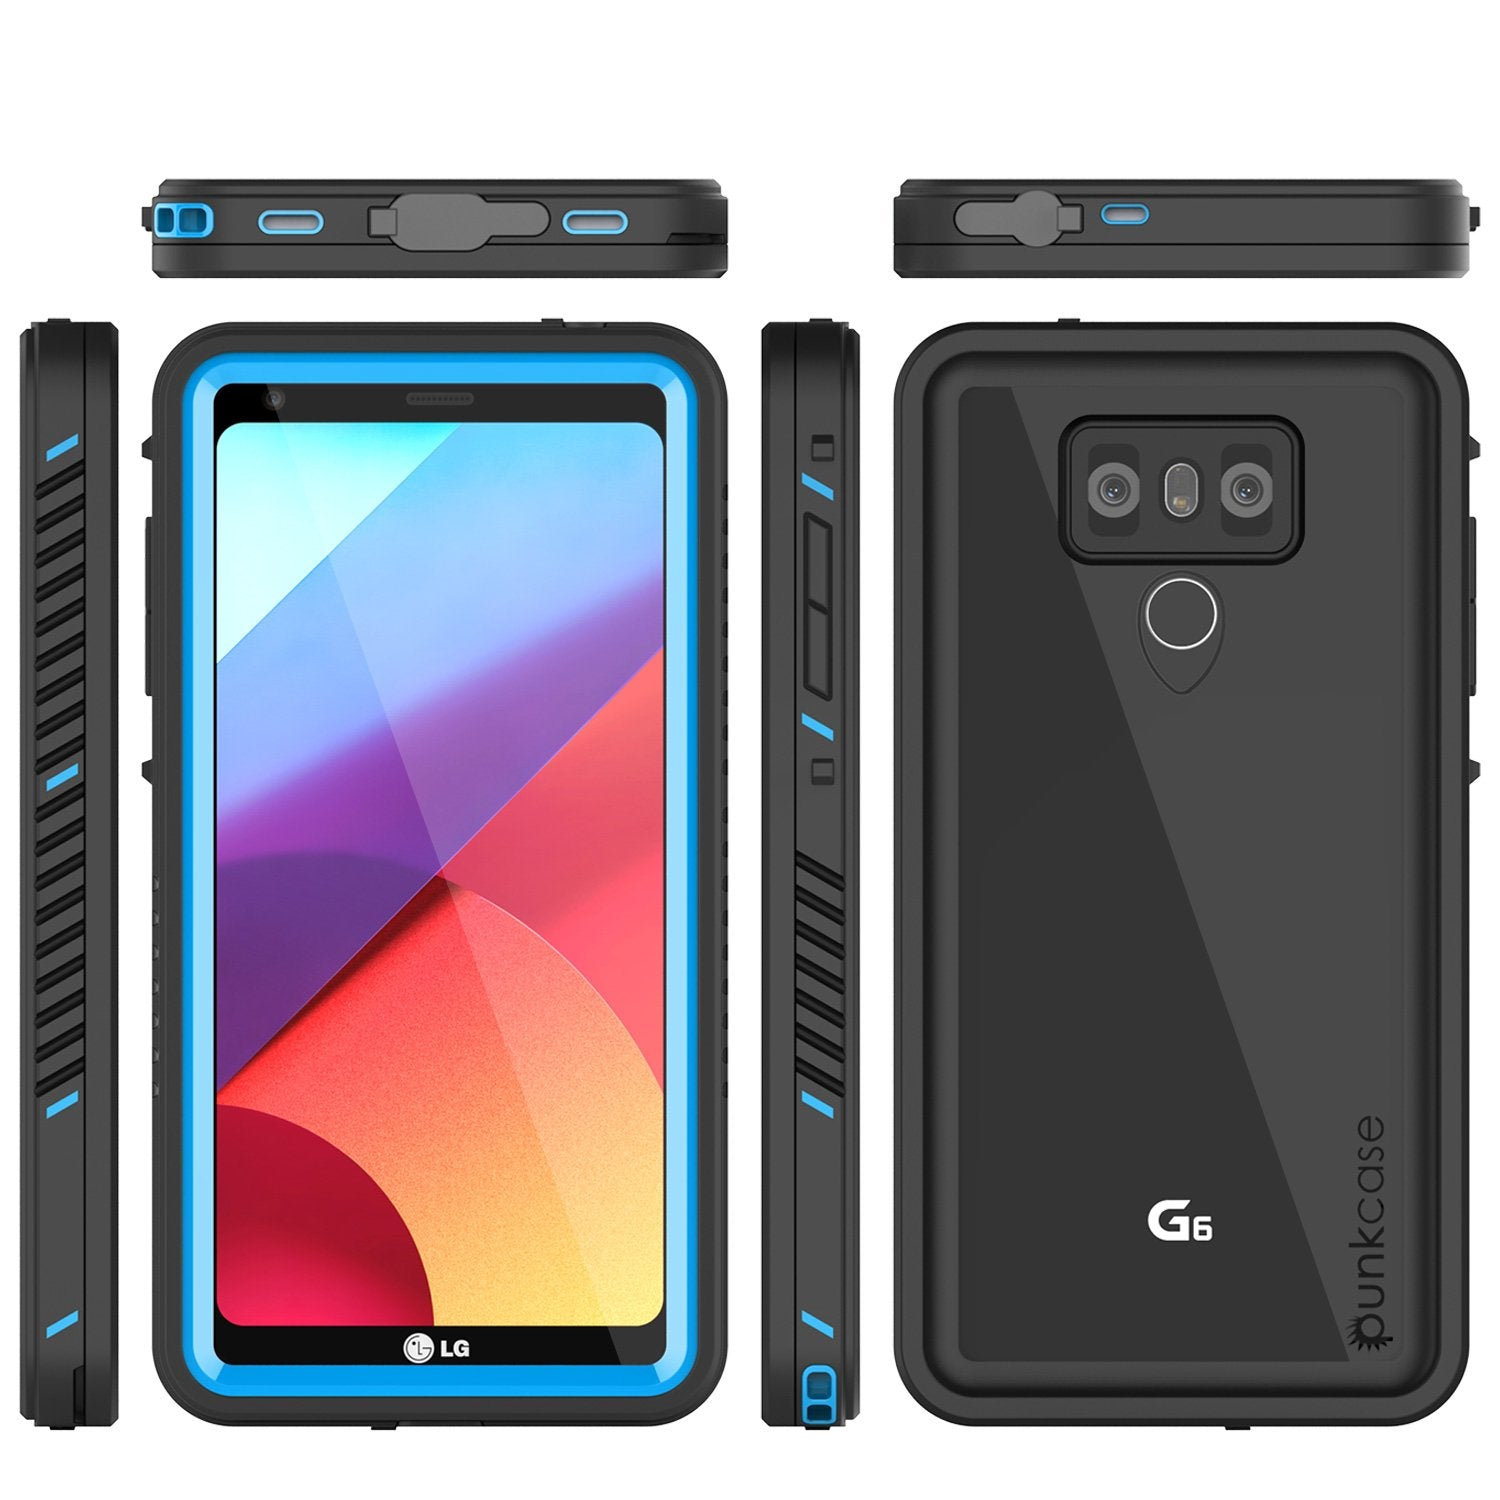 LG G6 Waterproof Case, Punkcase [Extreme Series] [Slim Fit] [IP68 Certified] [Shockproof] [Snowproof] [Dirproof] Armor Cover W/ Built In Screen Protector for LG G6 [BLUE]